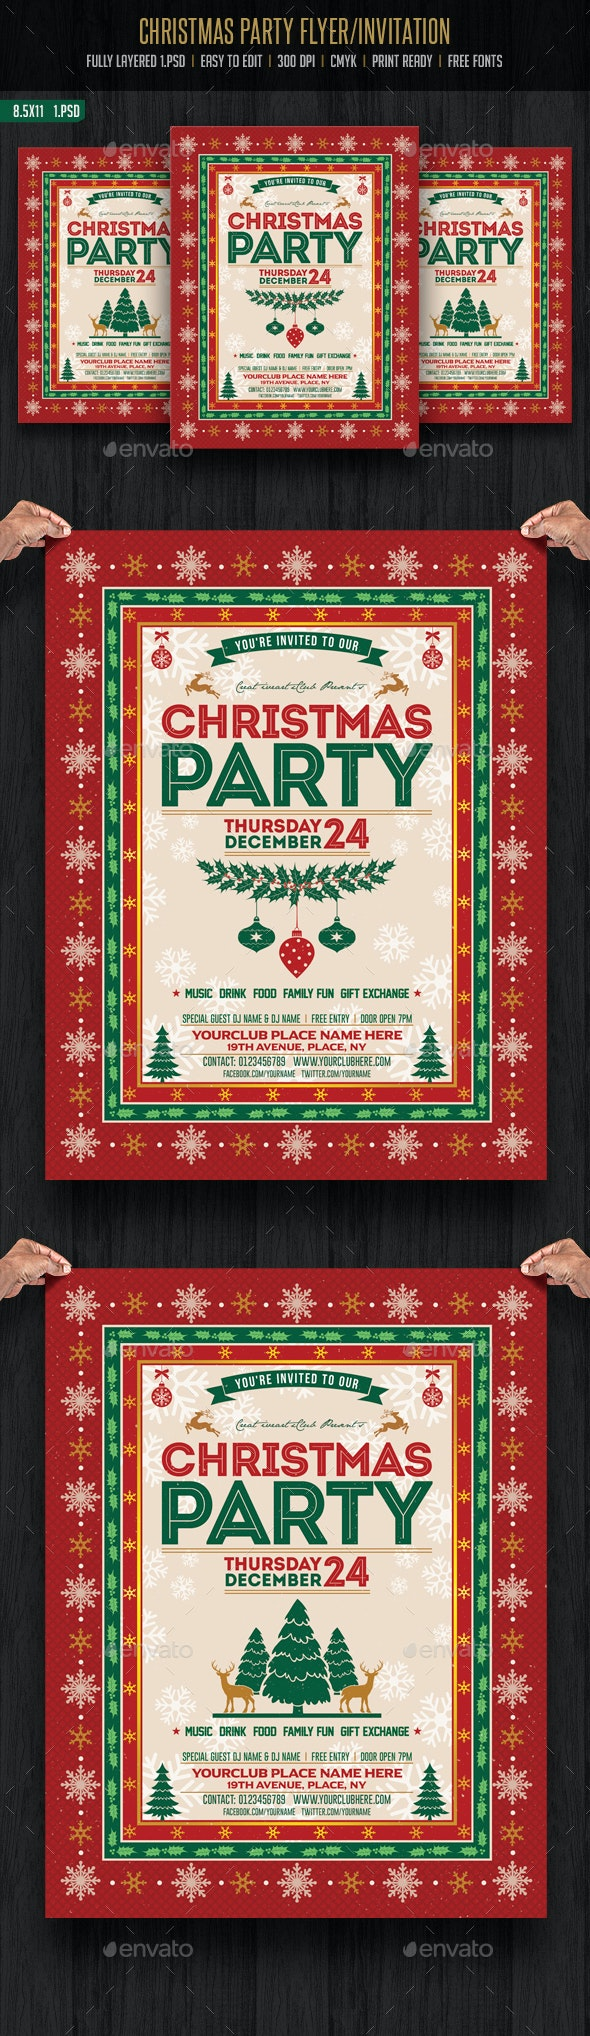 Christmas Party Flyer/ Invitation - Events Flyers